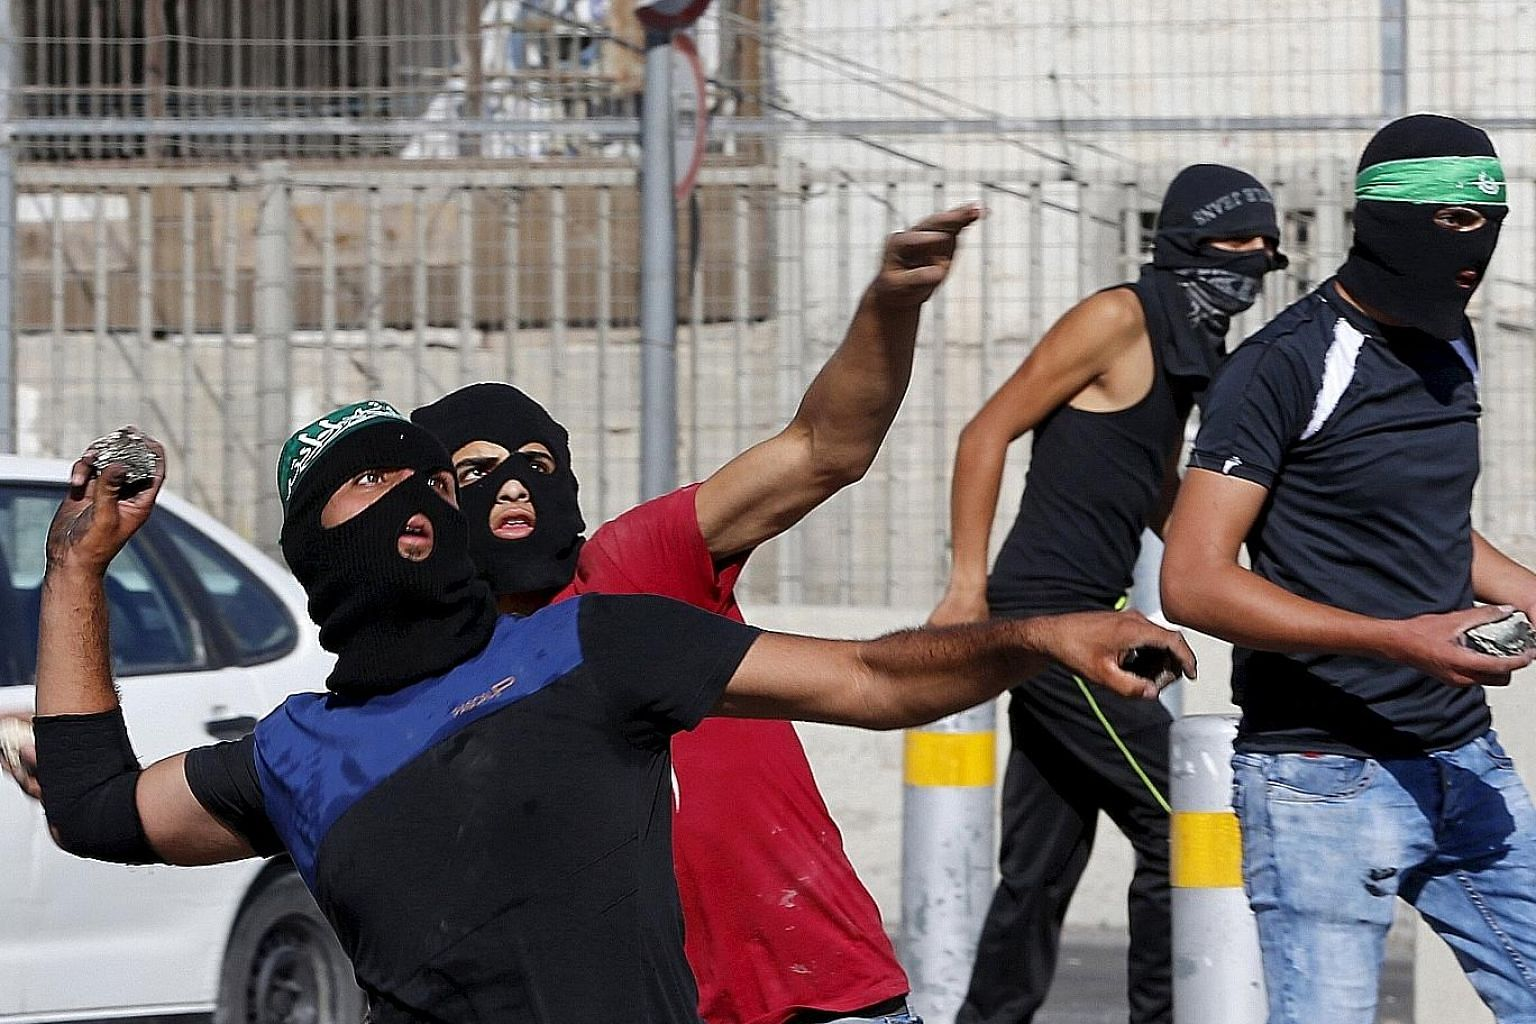 Palestinians hurling stones at police last week at a checkpoint between the Shuafat refugee camp and Jerusalem. The government is preparing legislation for minimum prison terms for adults who throw rocks and firebombs.